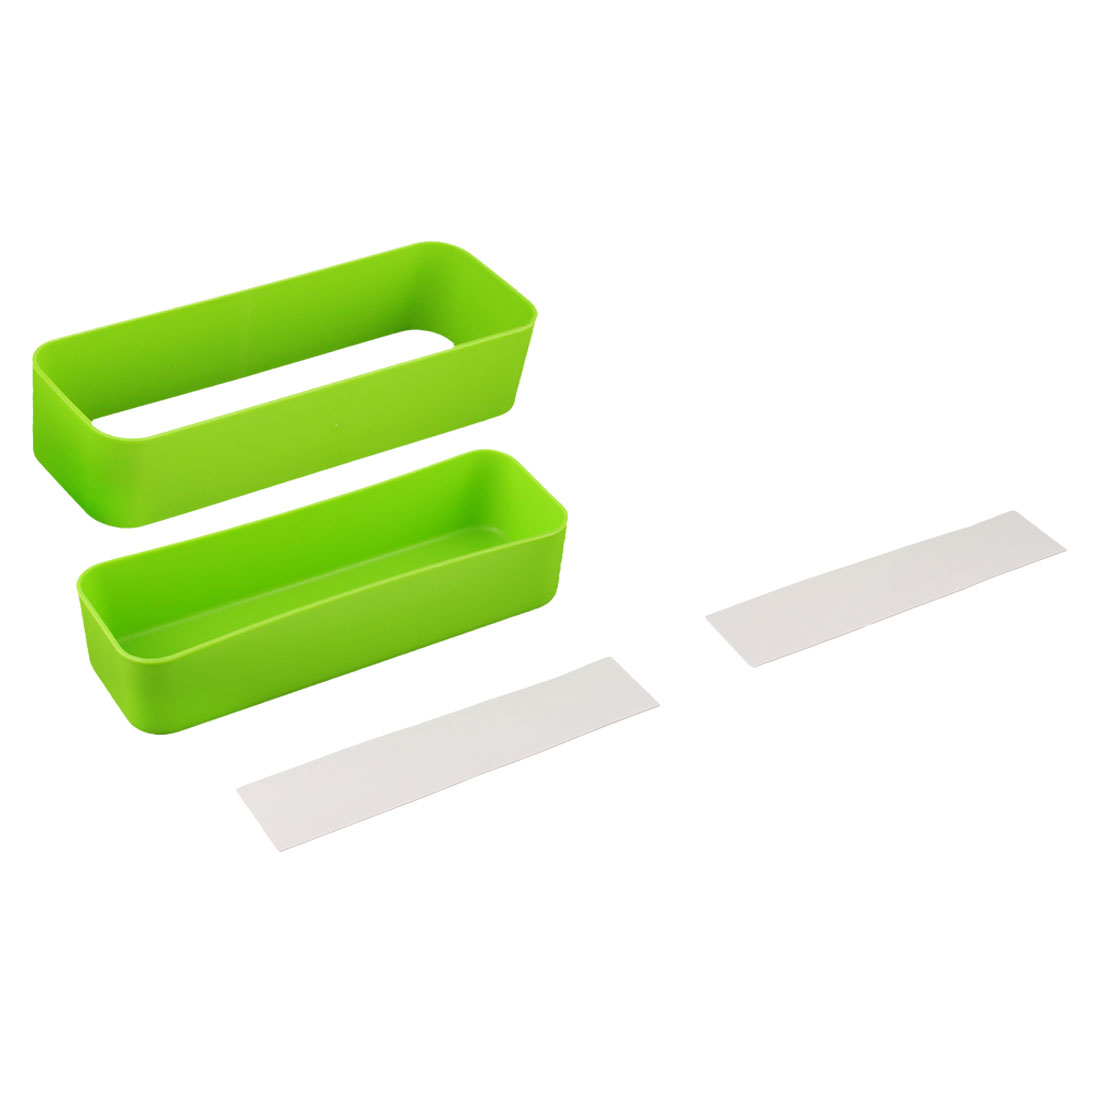 Household Living Room Plastic Umbrella Storage Stand Rack Holder Container Green